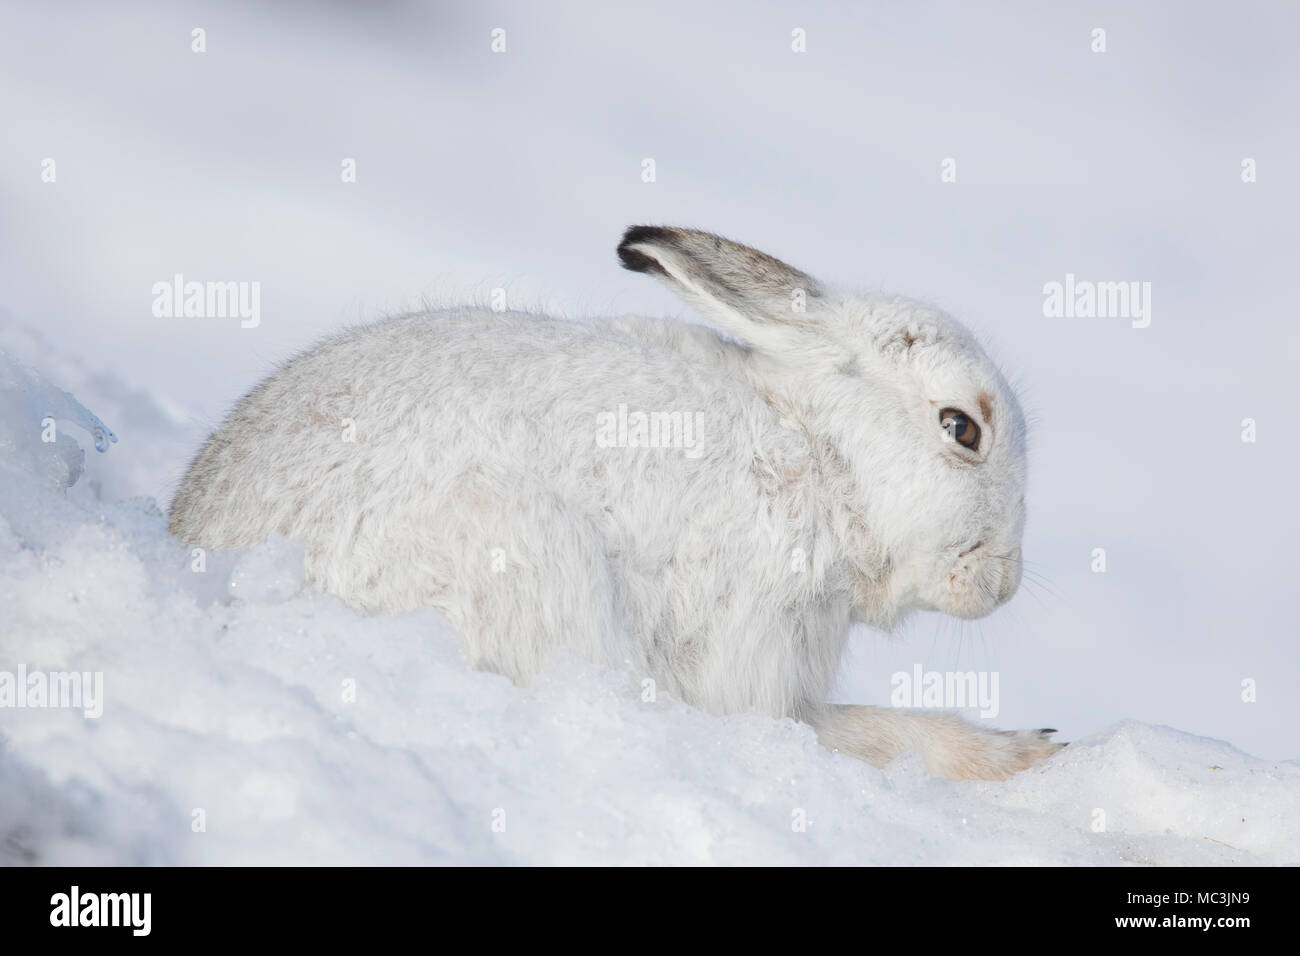 Mountain hare / Alpine hare / snow hare (Lepus timidus) in white winter pelage resting in the snow - Stock Image